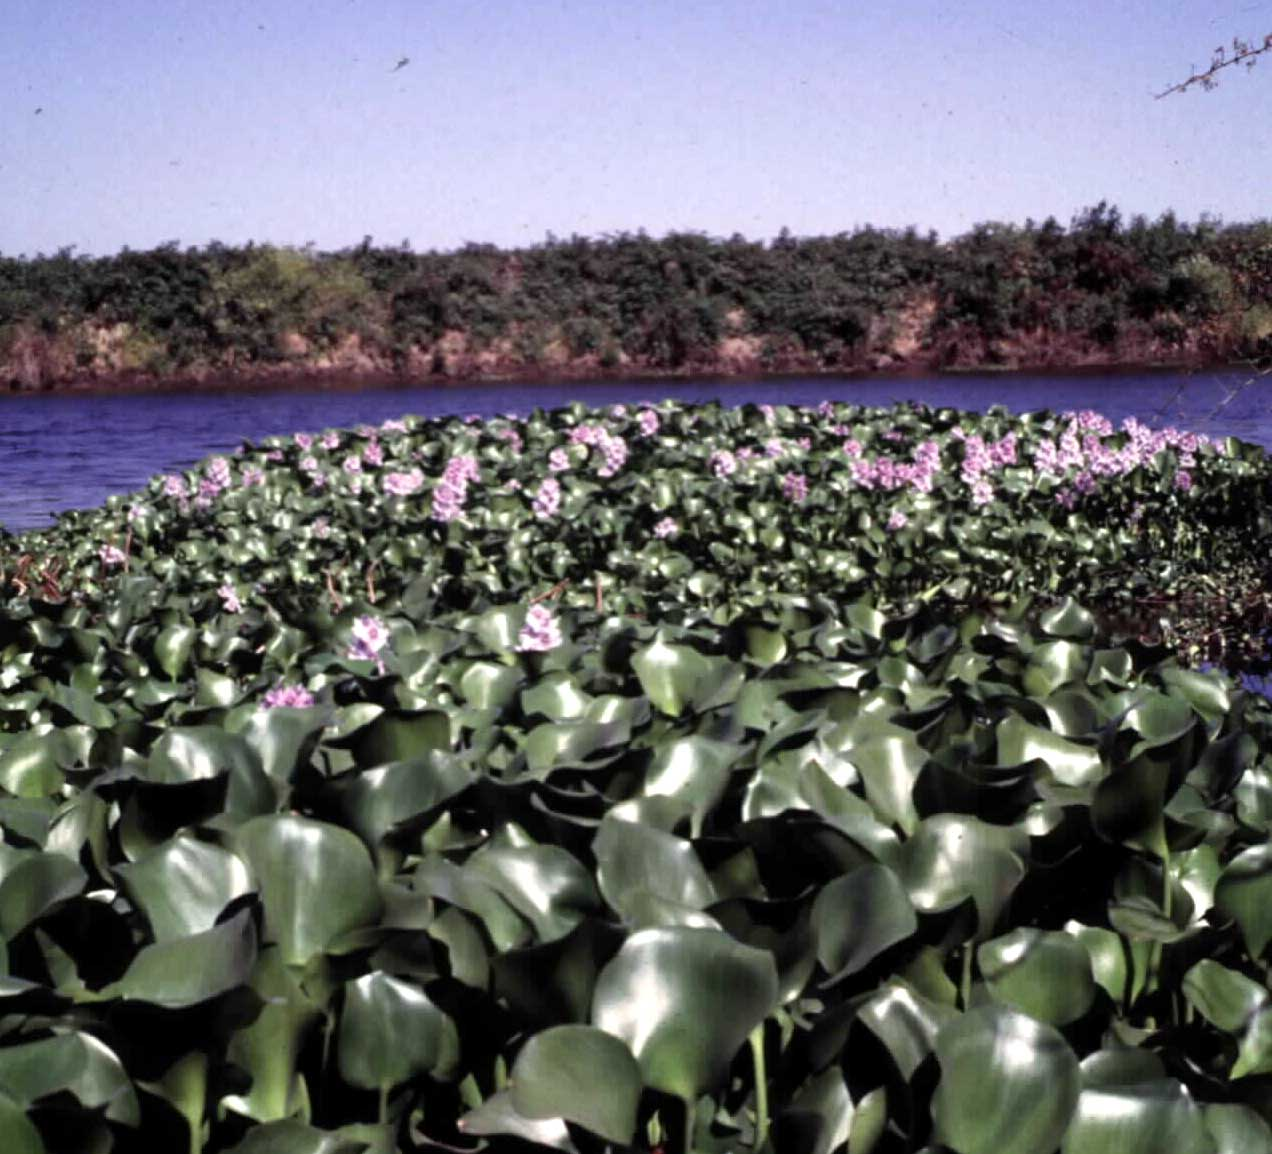 http://wric.ucdavis.edu/information/aquatic/images/water_hyacinth_1.jpg